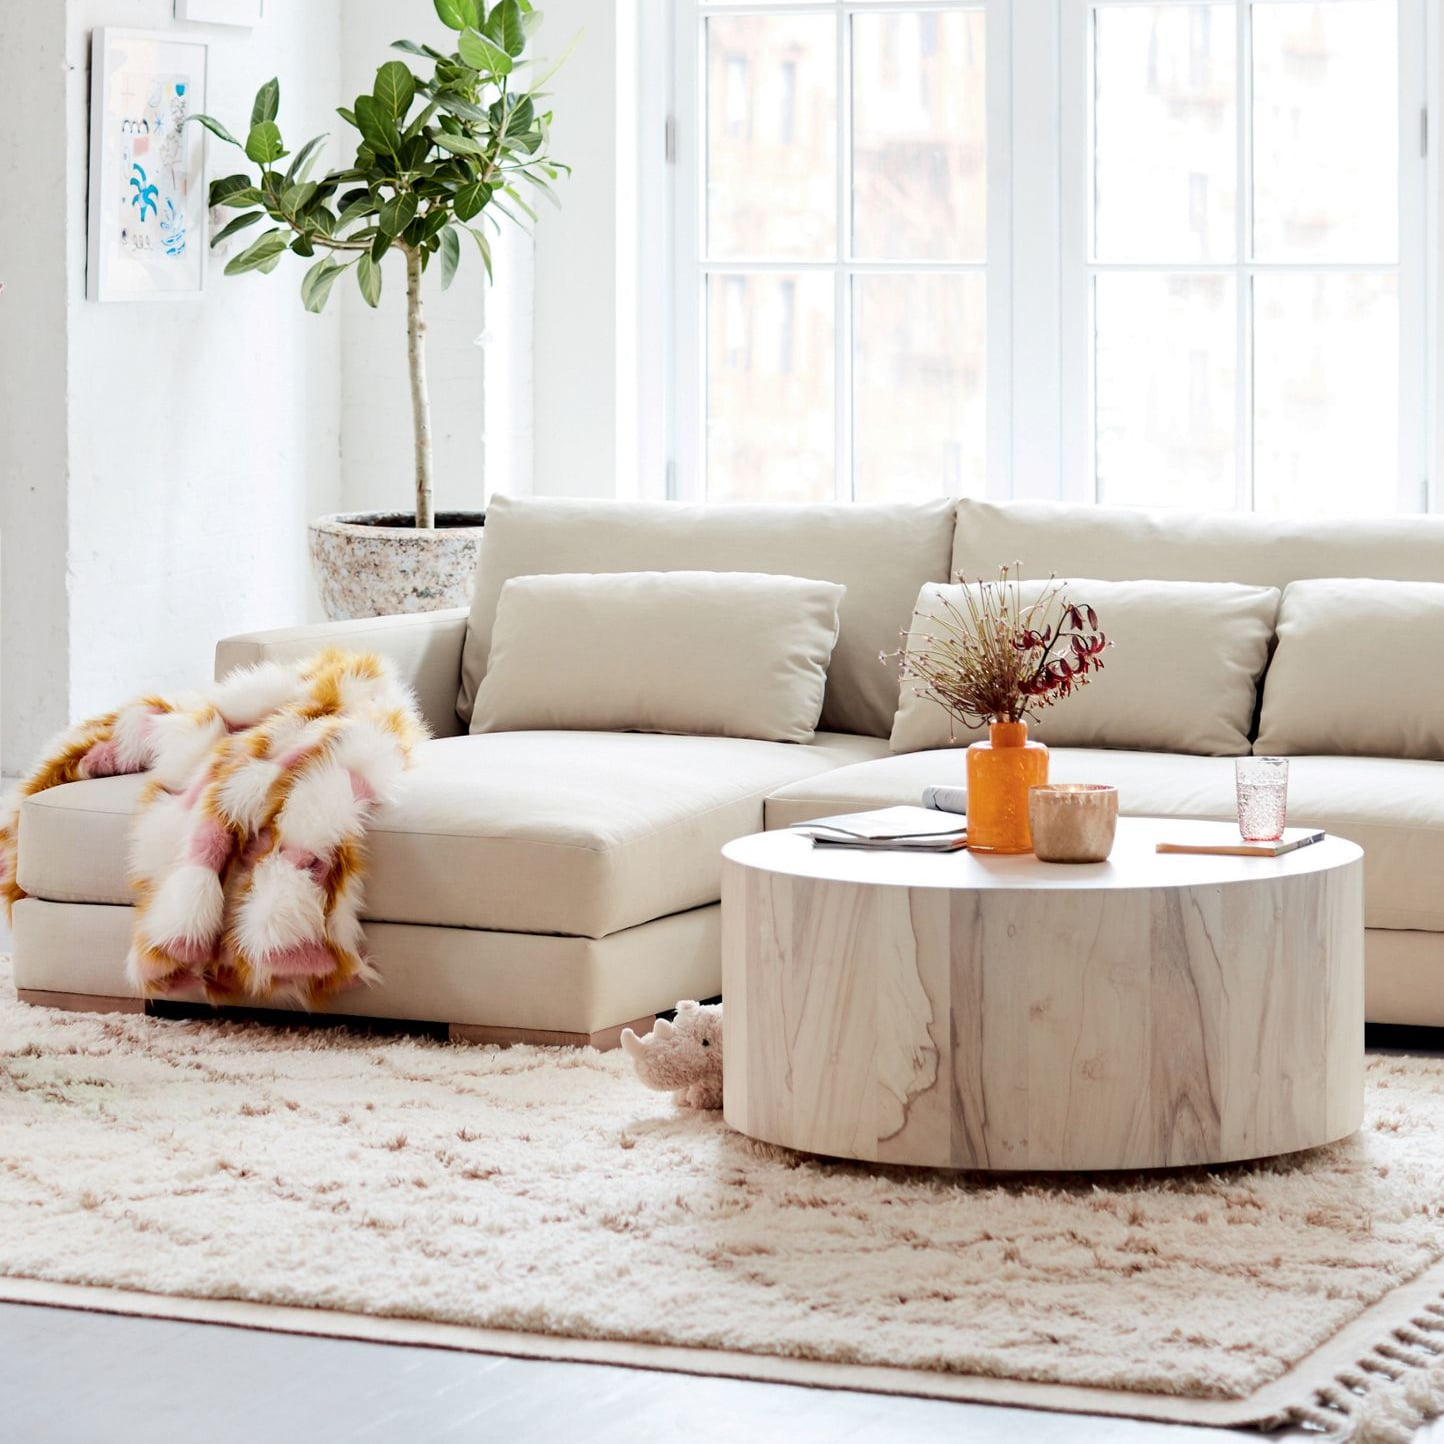 The Most Stylish Home Decor From Anthropologie Popsugar Home